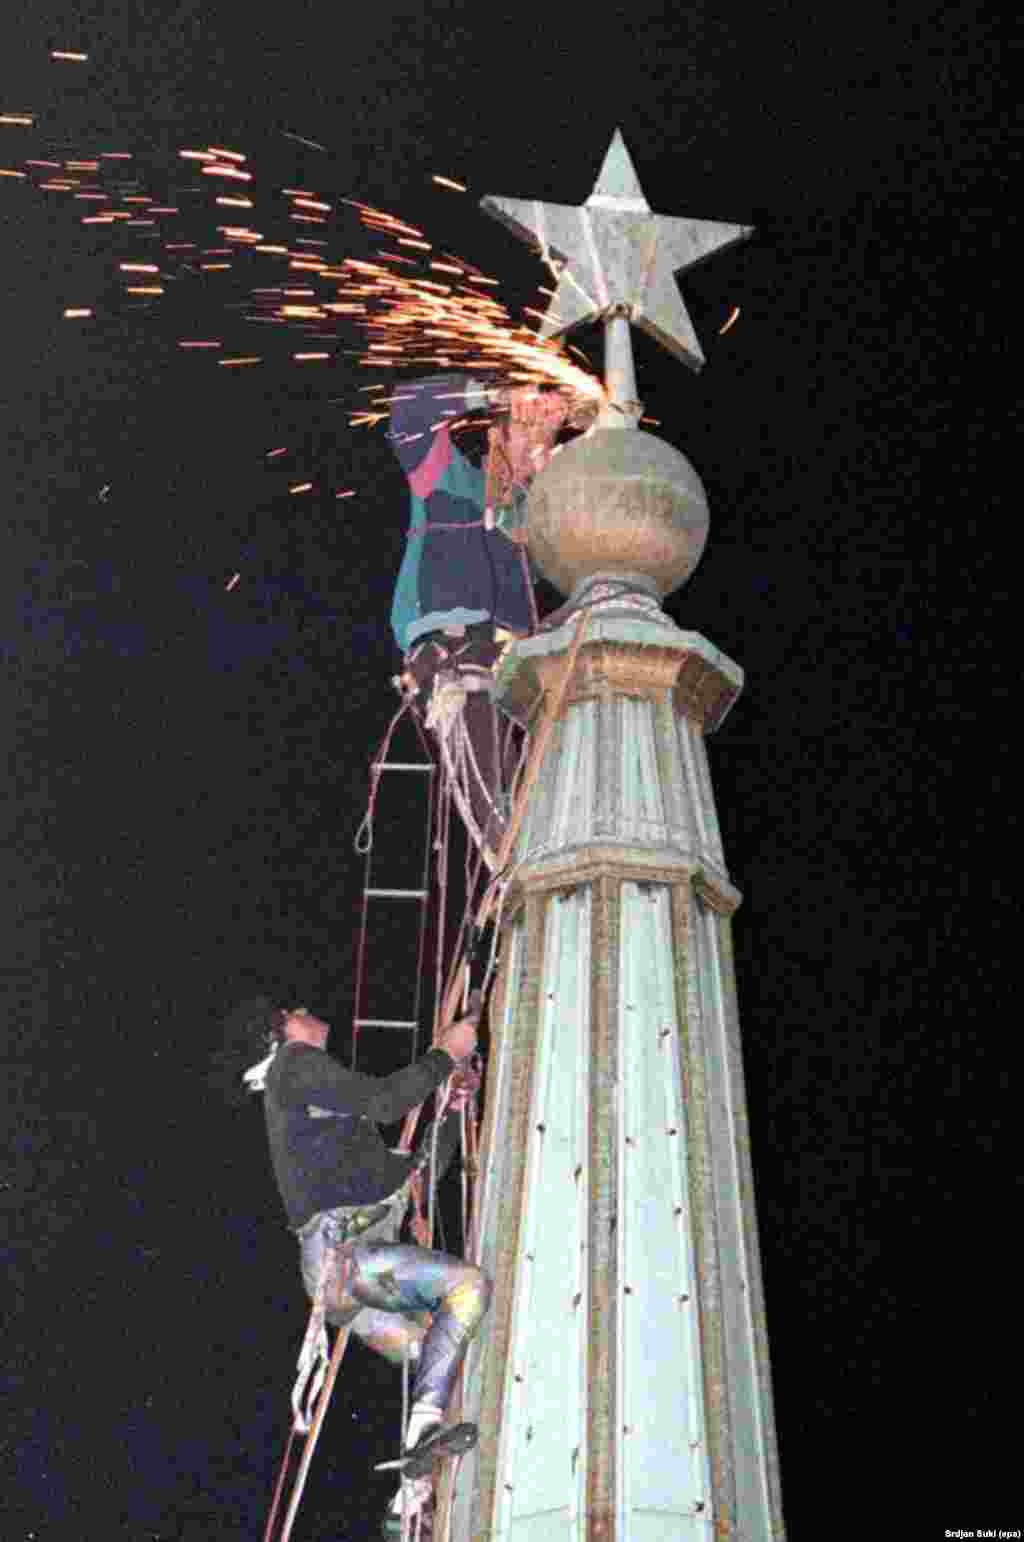 Climbers cut off the communist star from the tower of Belgrade's town hall in 1997 after months of street protests in the Serbian capital.